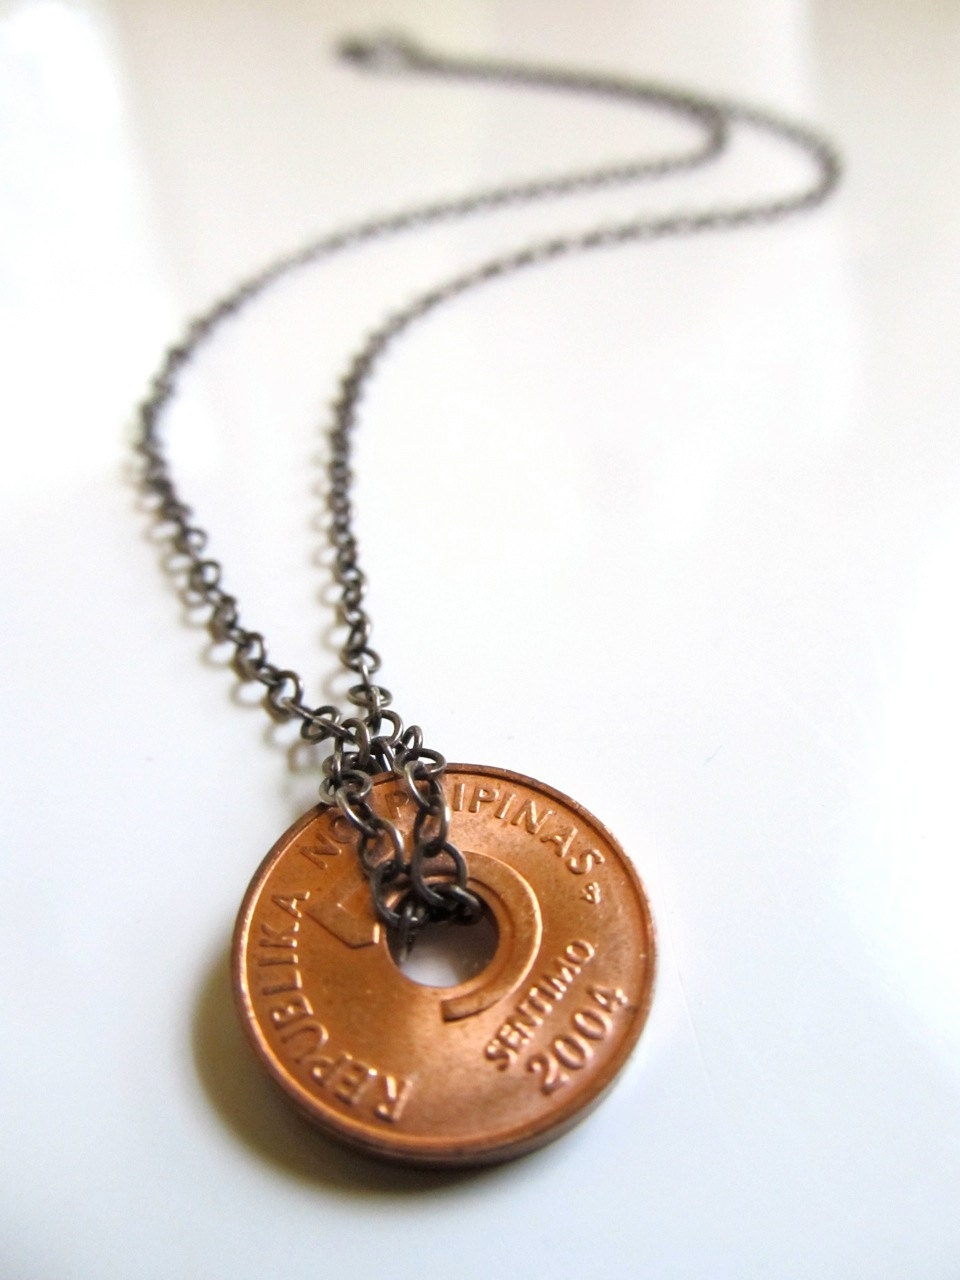 luck charm necklace with philippine coin on antique